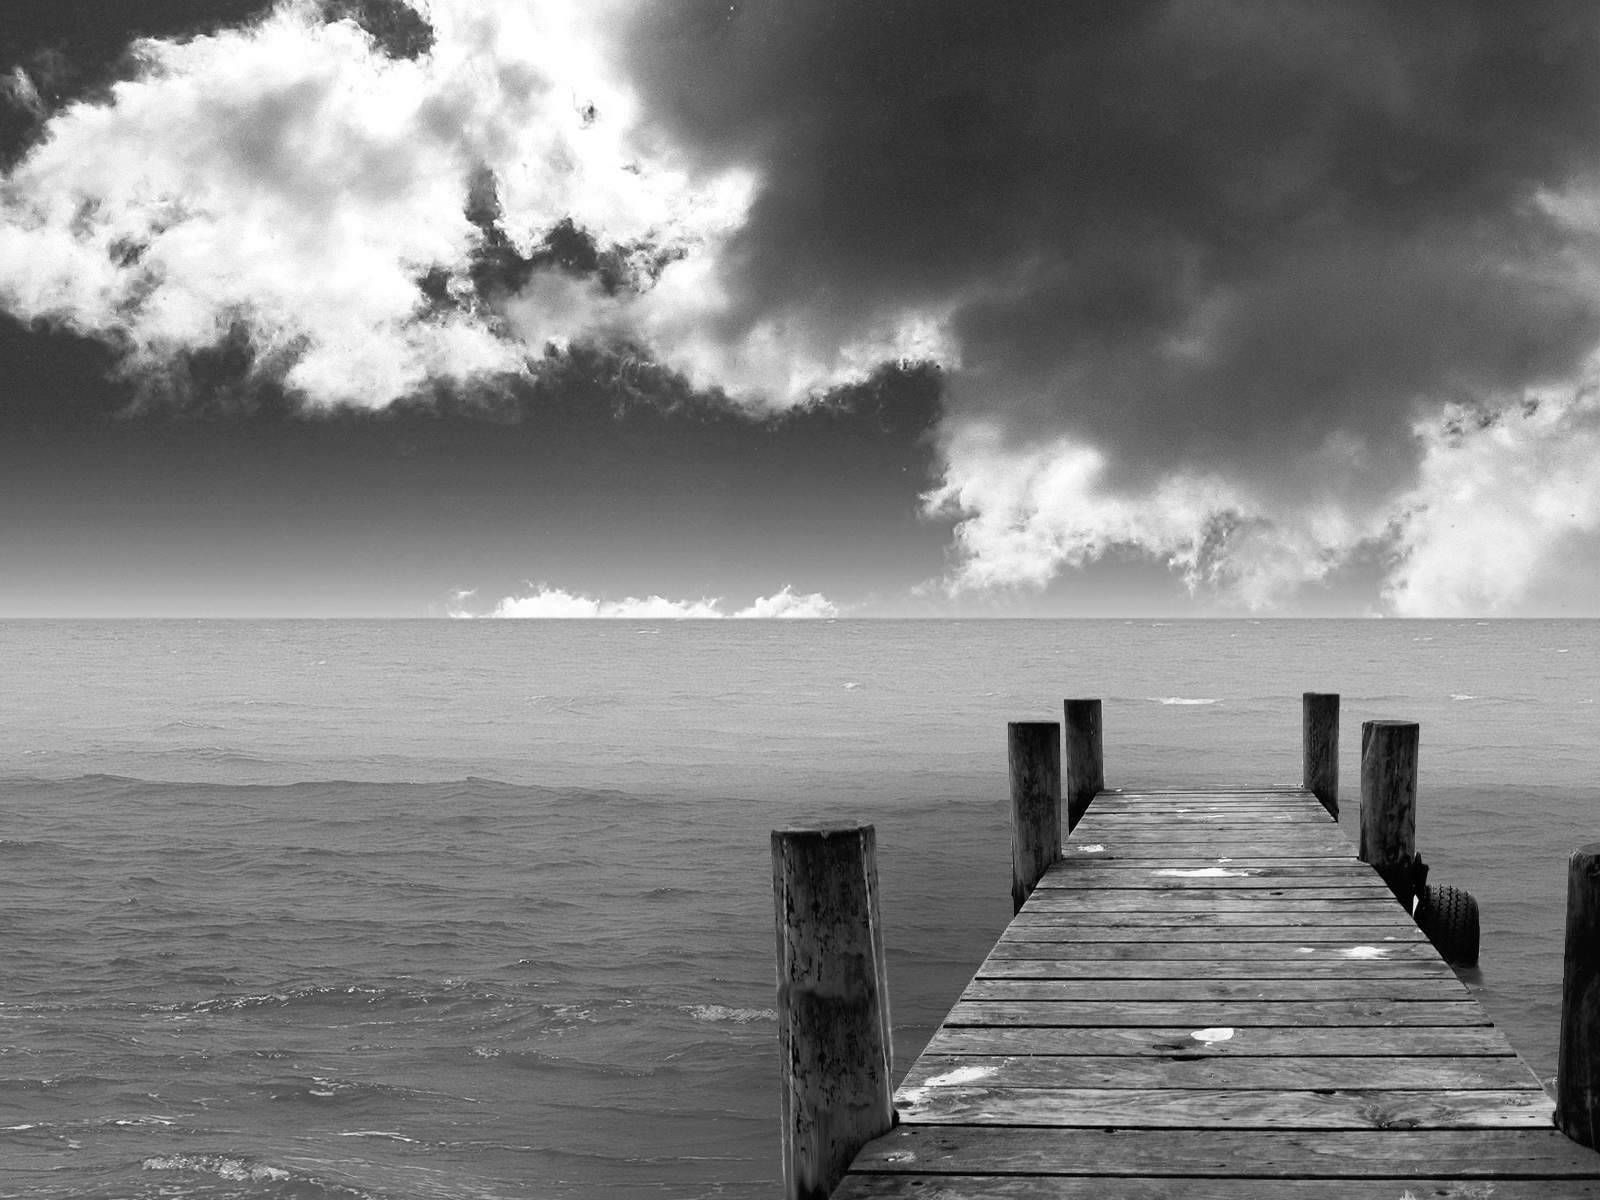 Black And White Nature Pictures Black And White Wallpapers Black And White Beach Landscape Hd Ocean Wallpaper Ocean Landscape Nature Wallpaper